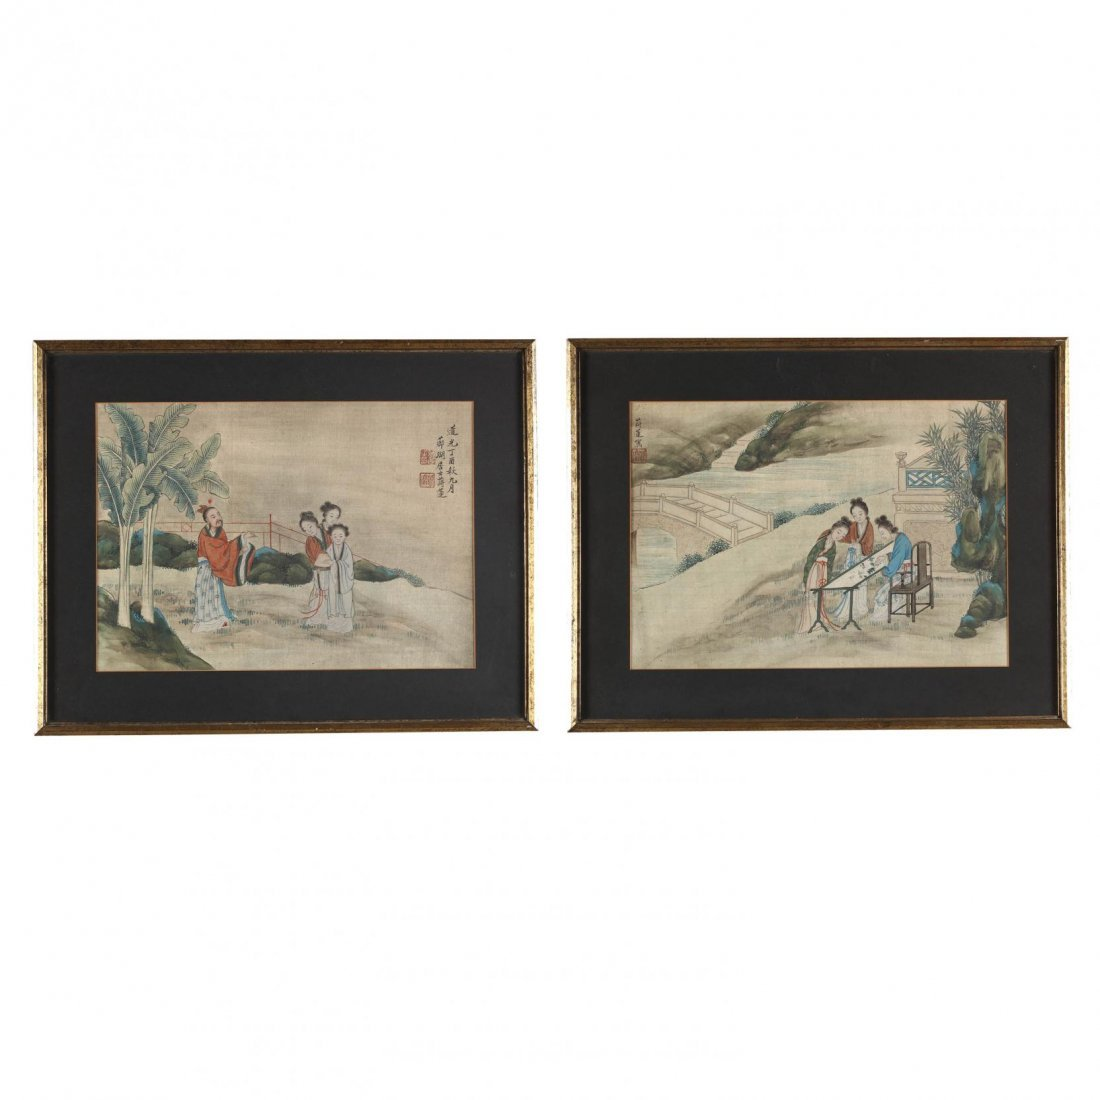 Two Paintings by Jiang Lian (Chinese, 18th-19th